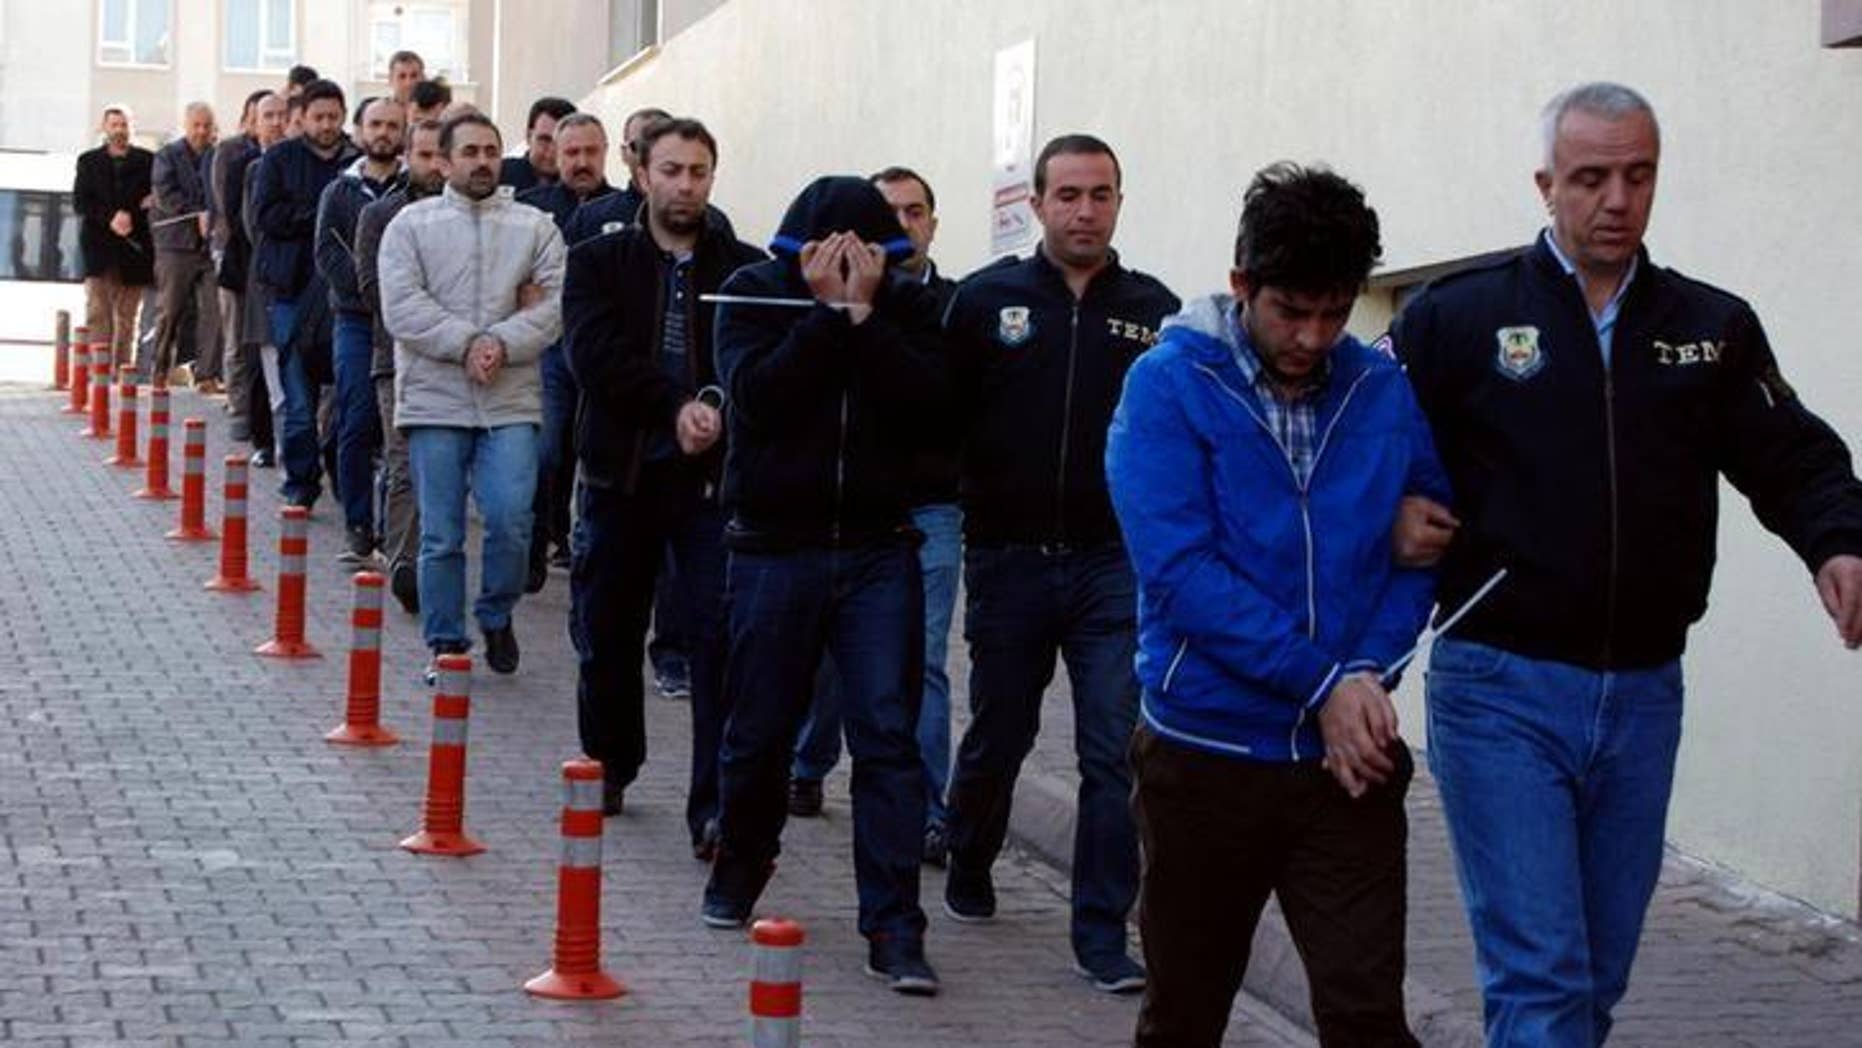 Suspected supporters of the U.S.-based cleric Fethullah Gulen escorted by plainclothes police officers at police headquarters in Kayseri, Turkey, on Tuesday.